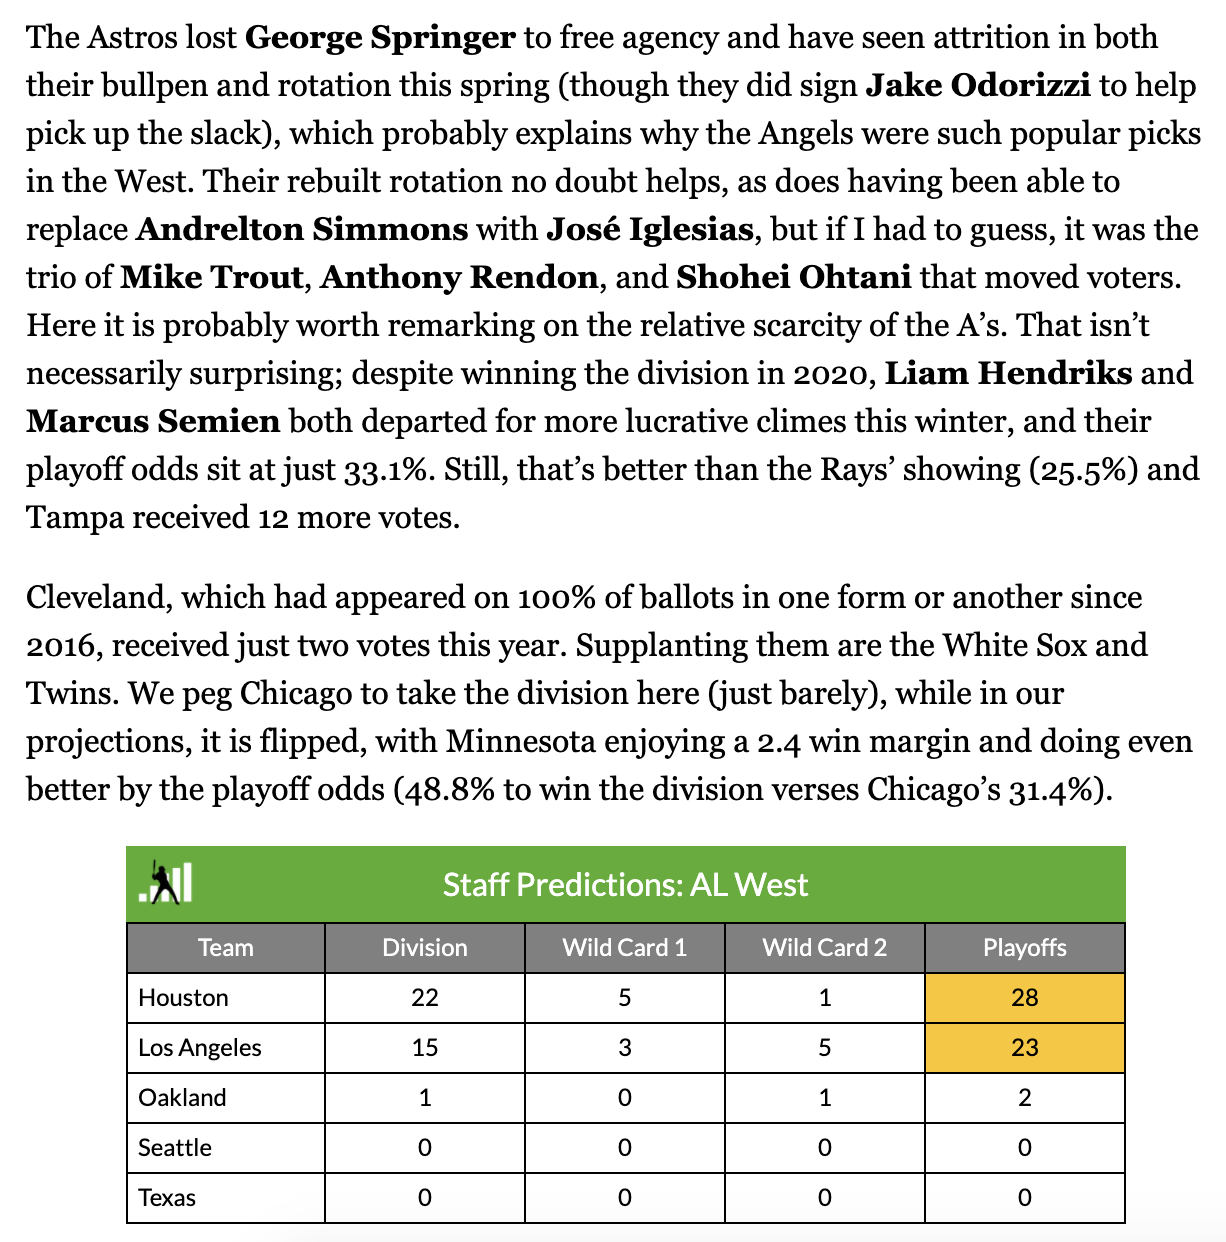 Fangraphs bullish on Angels